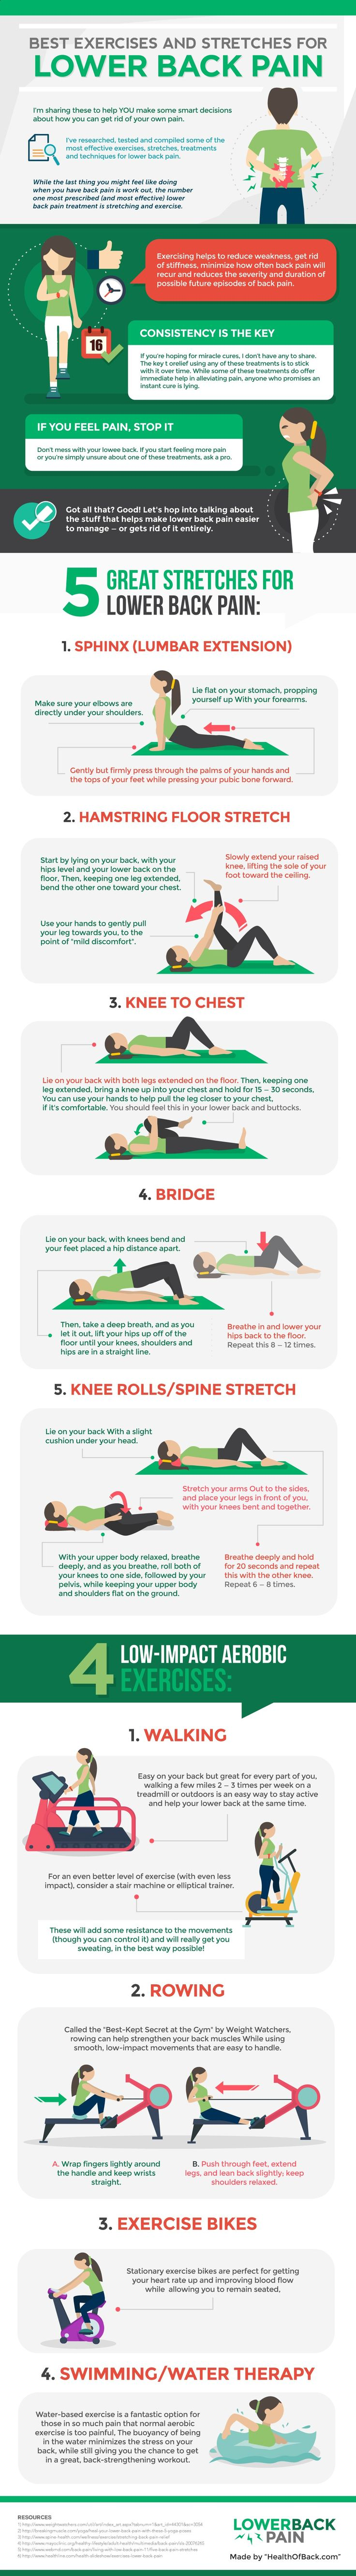 9 Best Exercises and Stretches for Lower Back Pain [infographic] psoas exercises